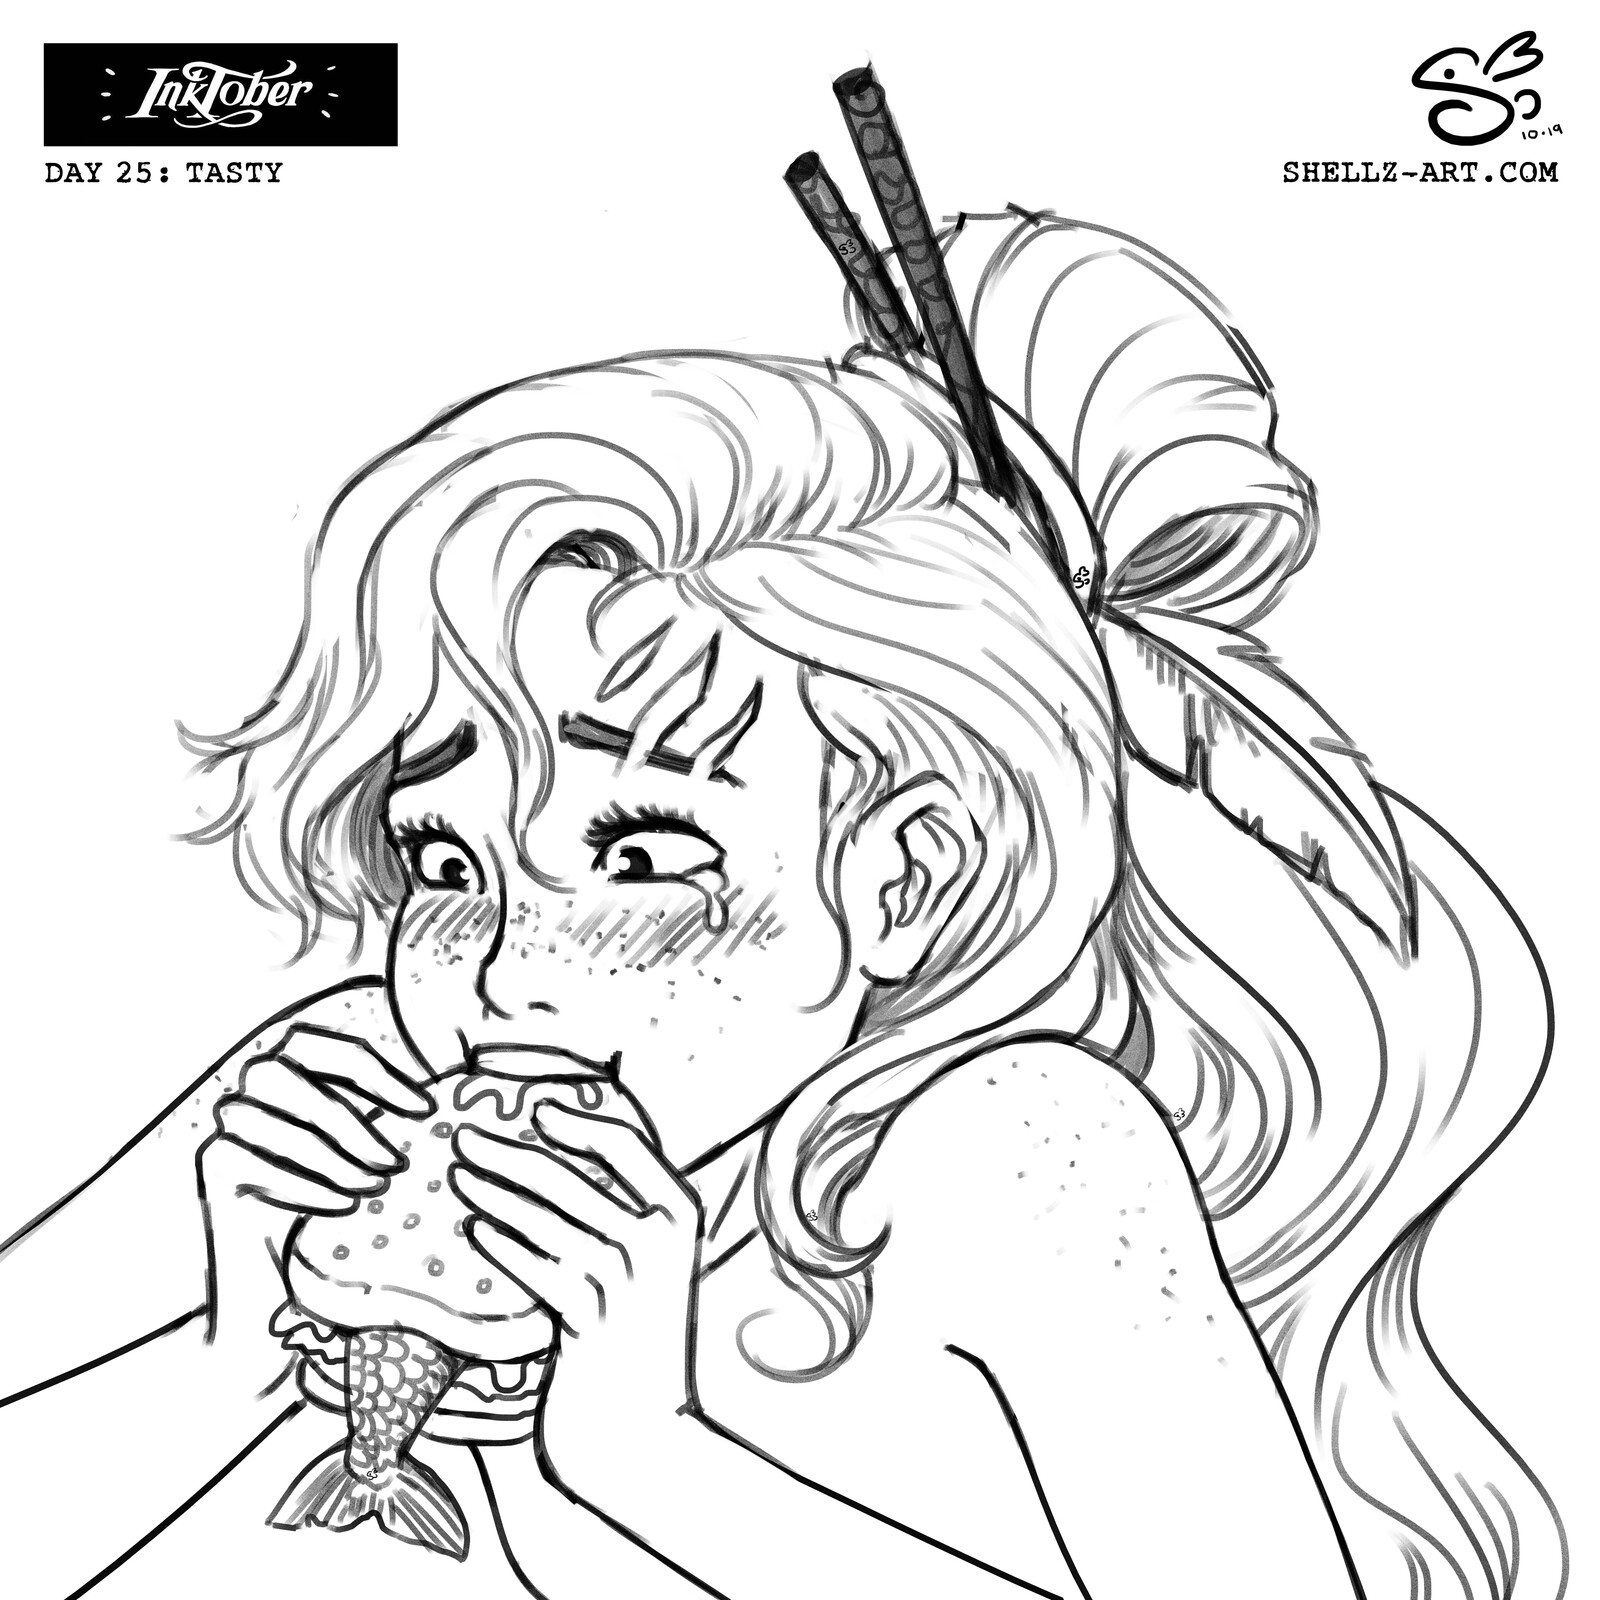 Inktober 2019 | Day 25: Tasty